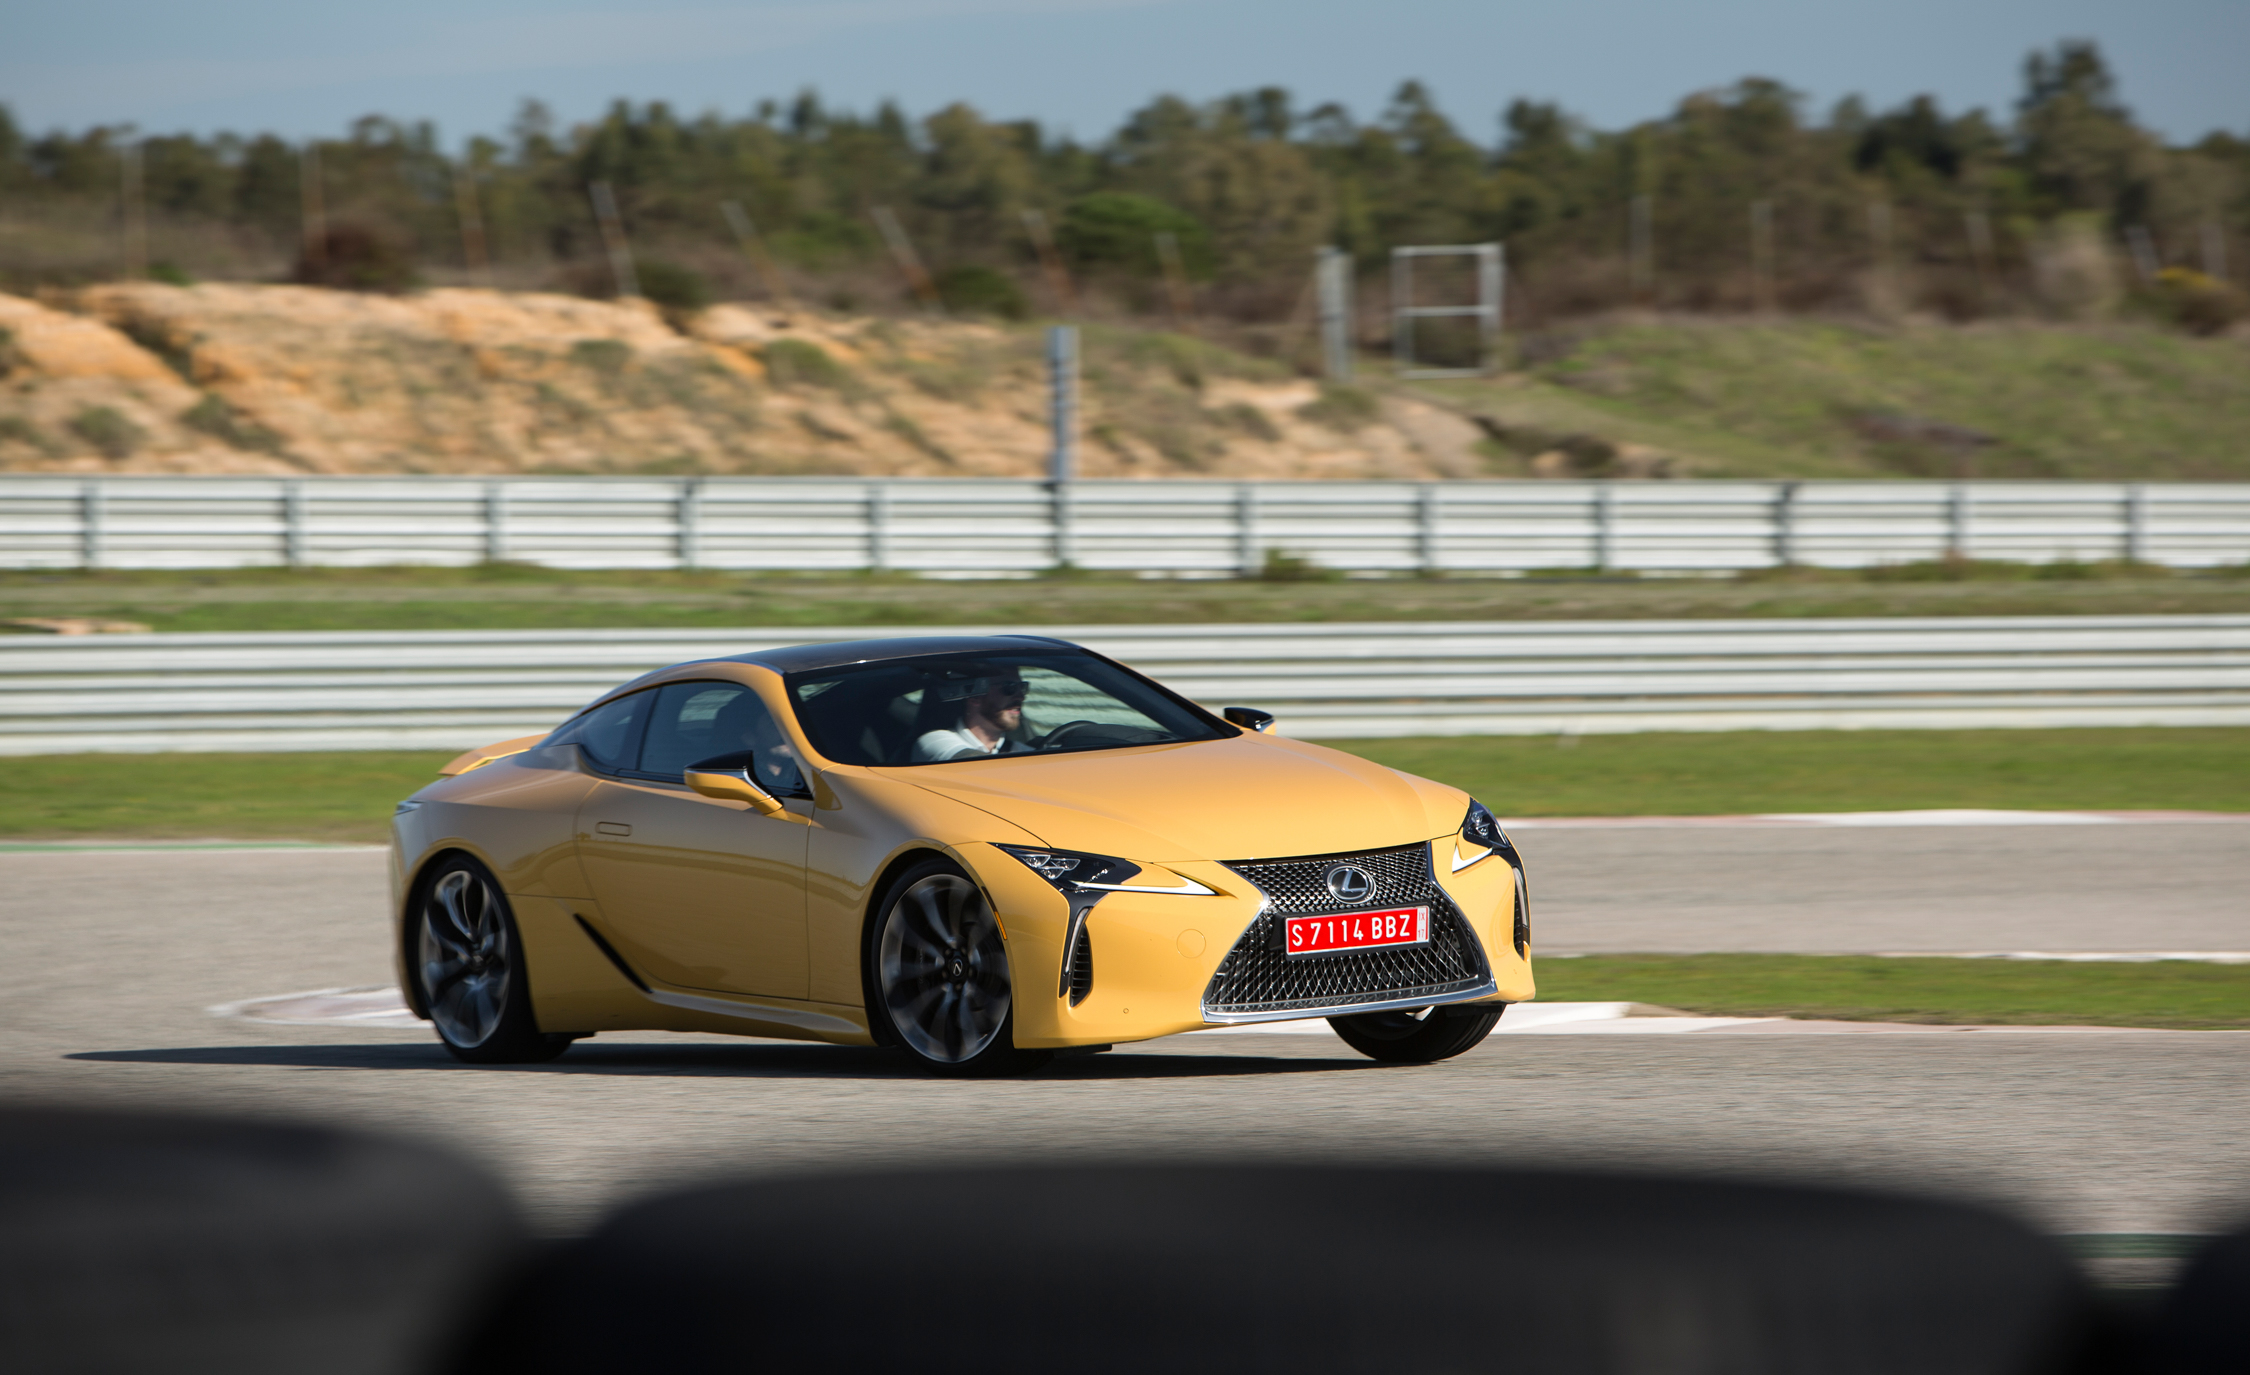 2018 Lexus Lc 500 Yellow Test Drive Performance (Photo 17 of 84)